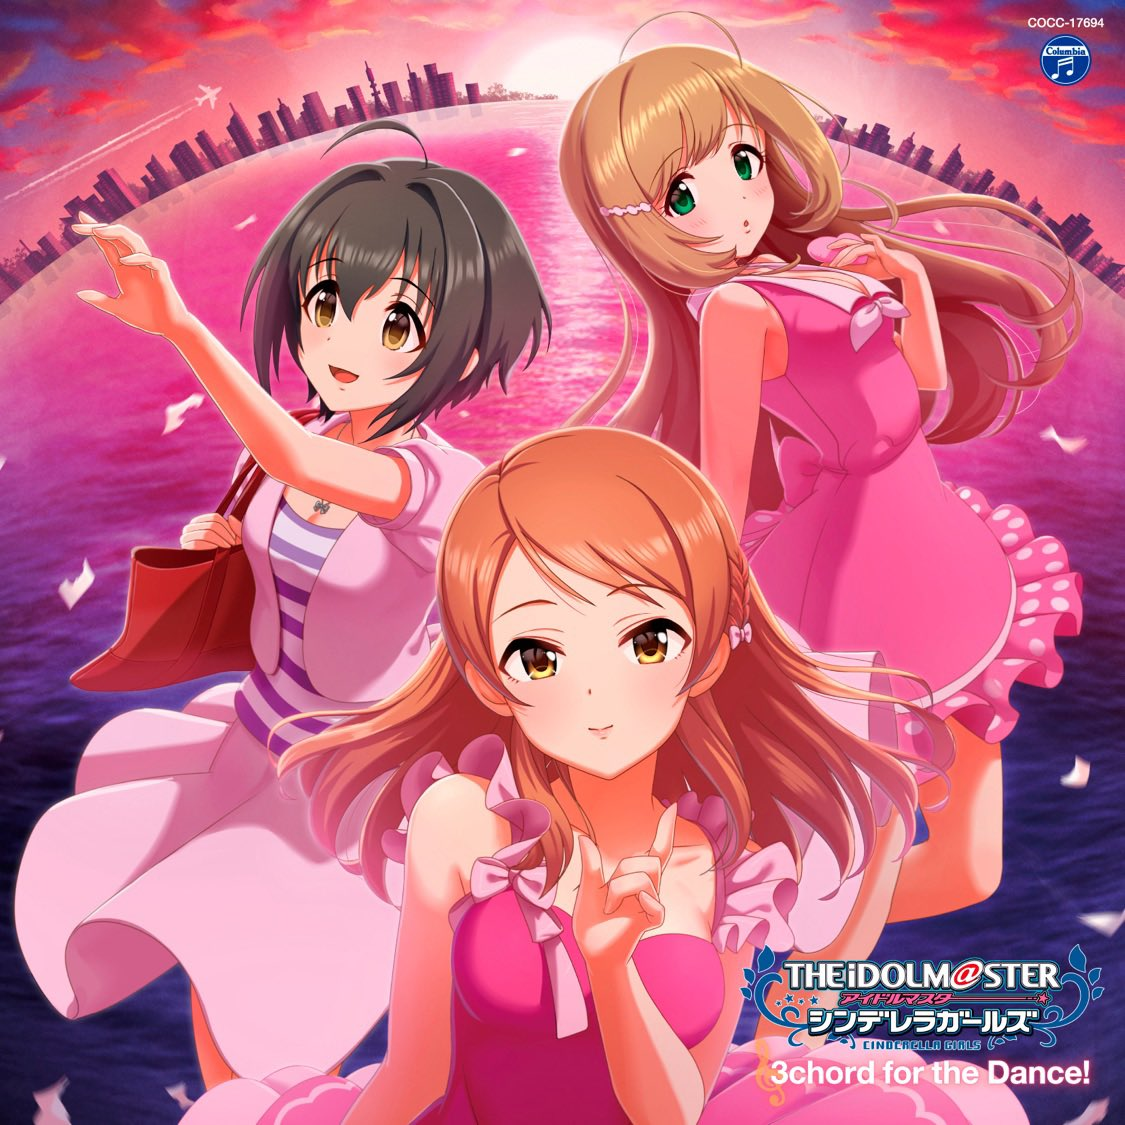 test ツイッターメディア - #nowplaying ミラーボール・ラブ (M@STER VERSION) by 宮本フレデリカ (CV: 髙野麻美), 棟方愛海 (CV: 藤本彩花), 及川雫 (CV: のぐちゆり), 荒木比奈 (CV: 田辺留依) & 姫川友紀 (CV: 杜野まこ) / THE IDOLM@STER CINDERELLA MASTER 3chord for the Dance! https://t.co/mb371vKRBy